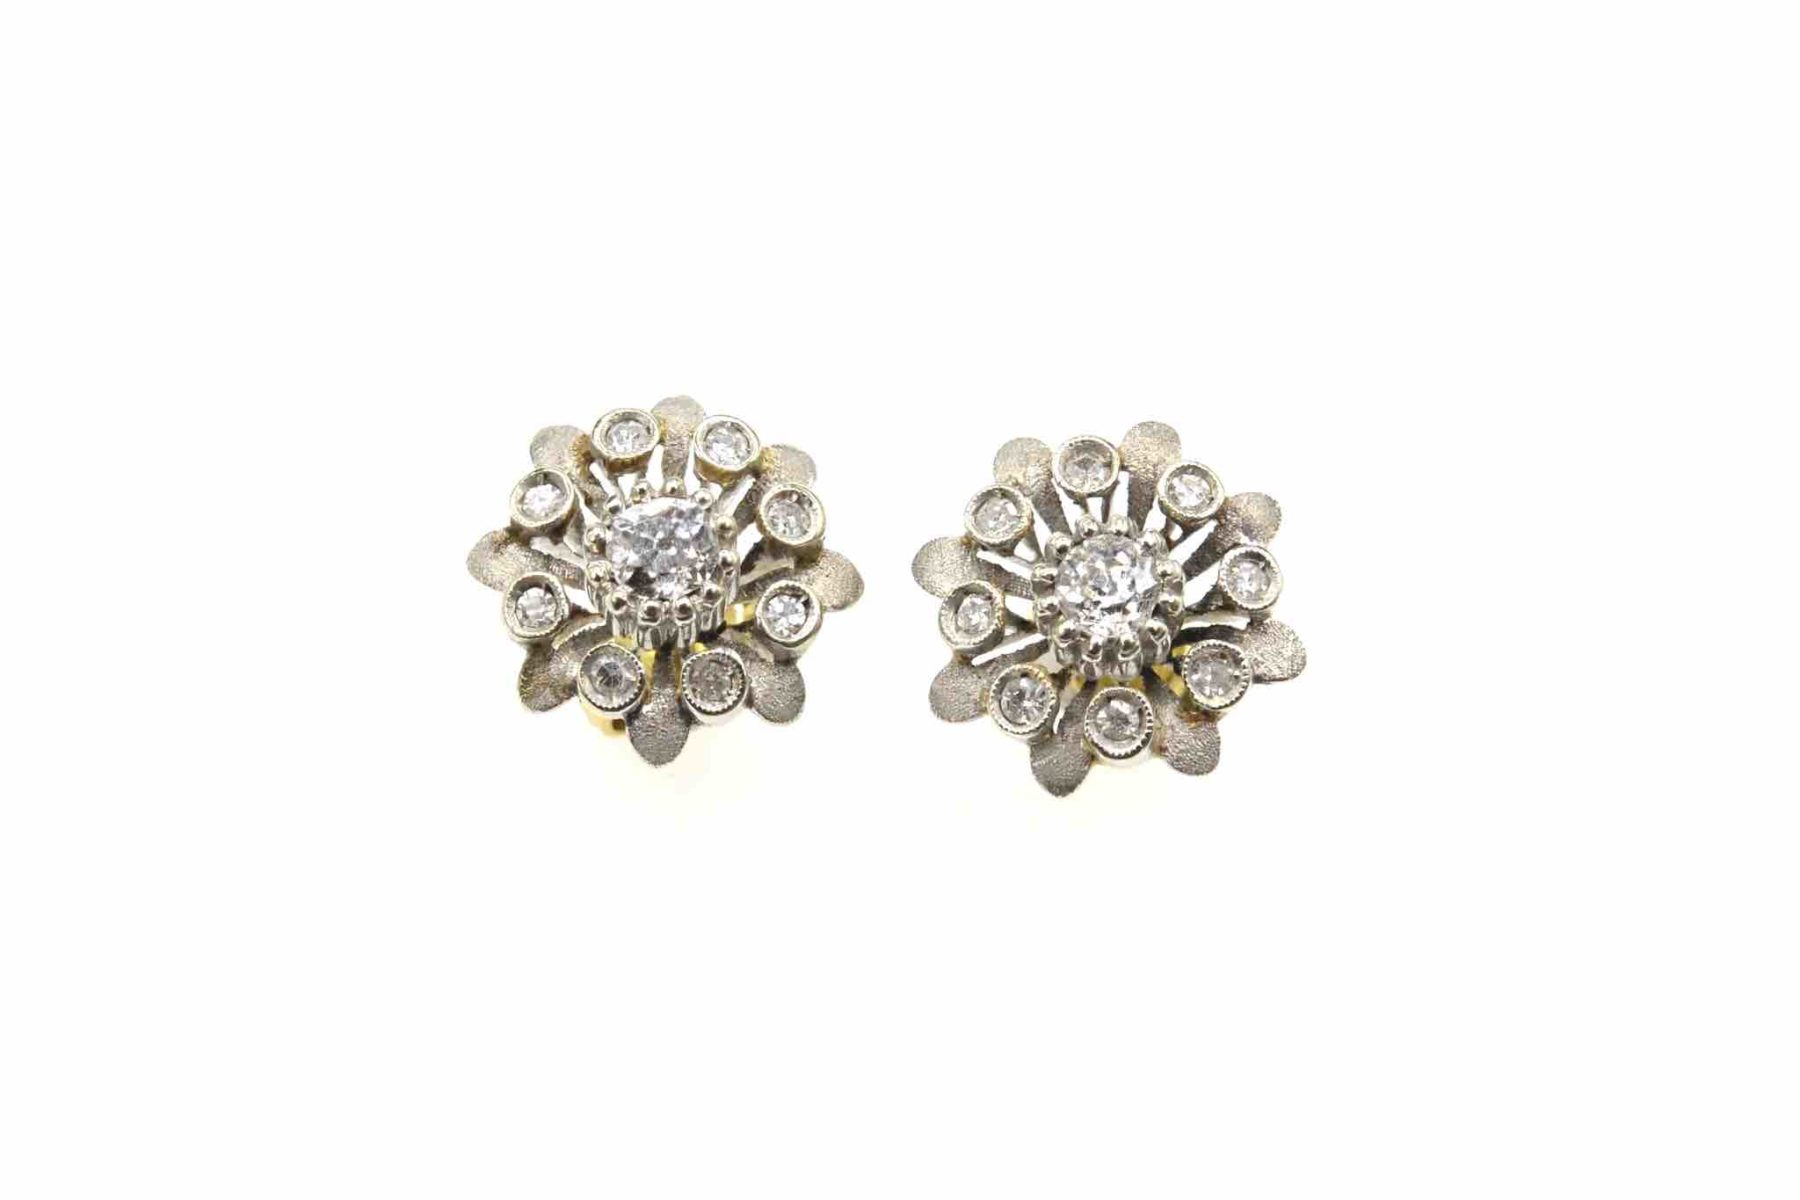 Boucles d 'oreilles diamants en or blanc